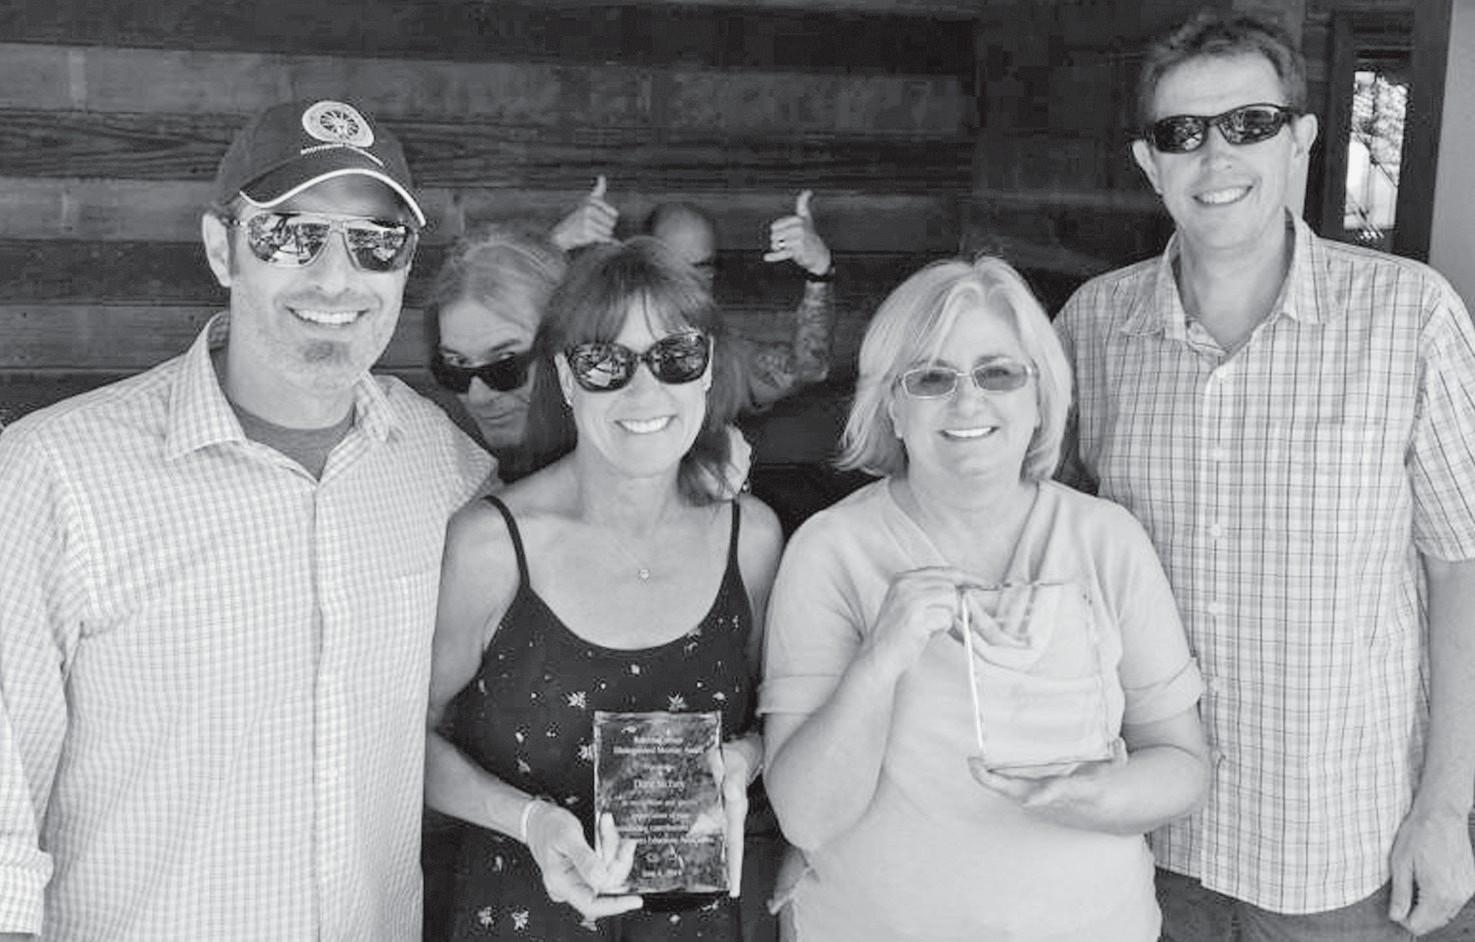 SUPPORTING EDUCATION—Co-presidents of the Las Virgenes Educators Association, Andrew Satinano, left, and Craig Hochhaus, right, present Calabasas High School teacher Diane McEvoy, center left, with the second annual Roberta Consani Distinguished Service Award and Acorn reporter Stephanie Bertholdo, center right, with the Sandi Pope Friend of Education Award.